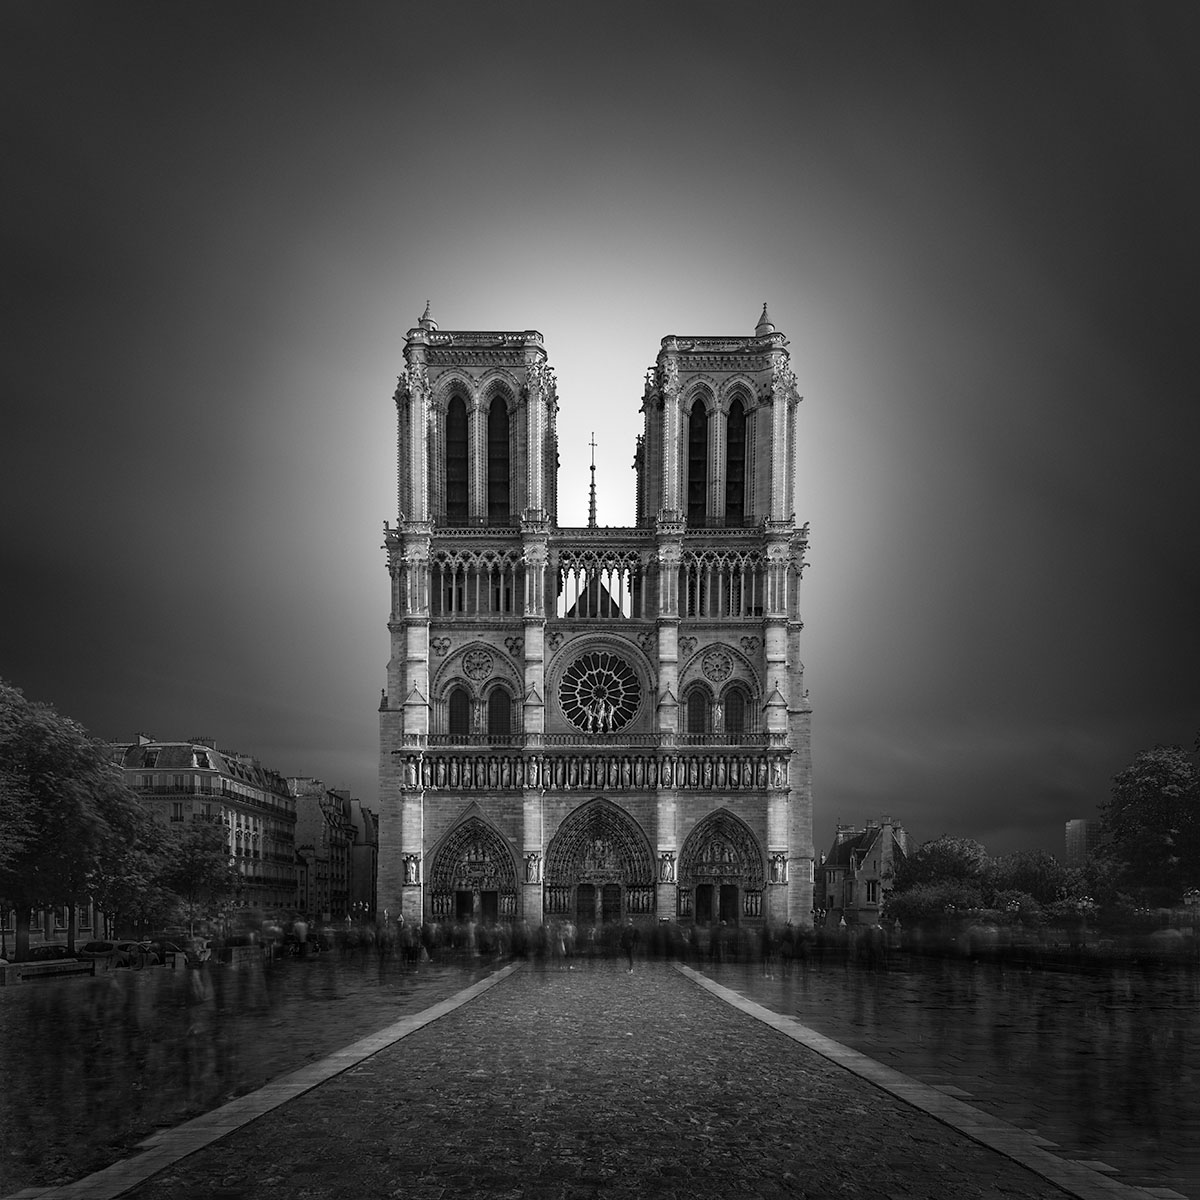 Enlightenment II - Notre Dame Cathedral Paris © Julia Anna Gospodarou 2017